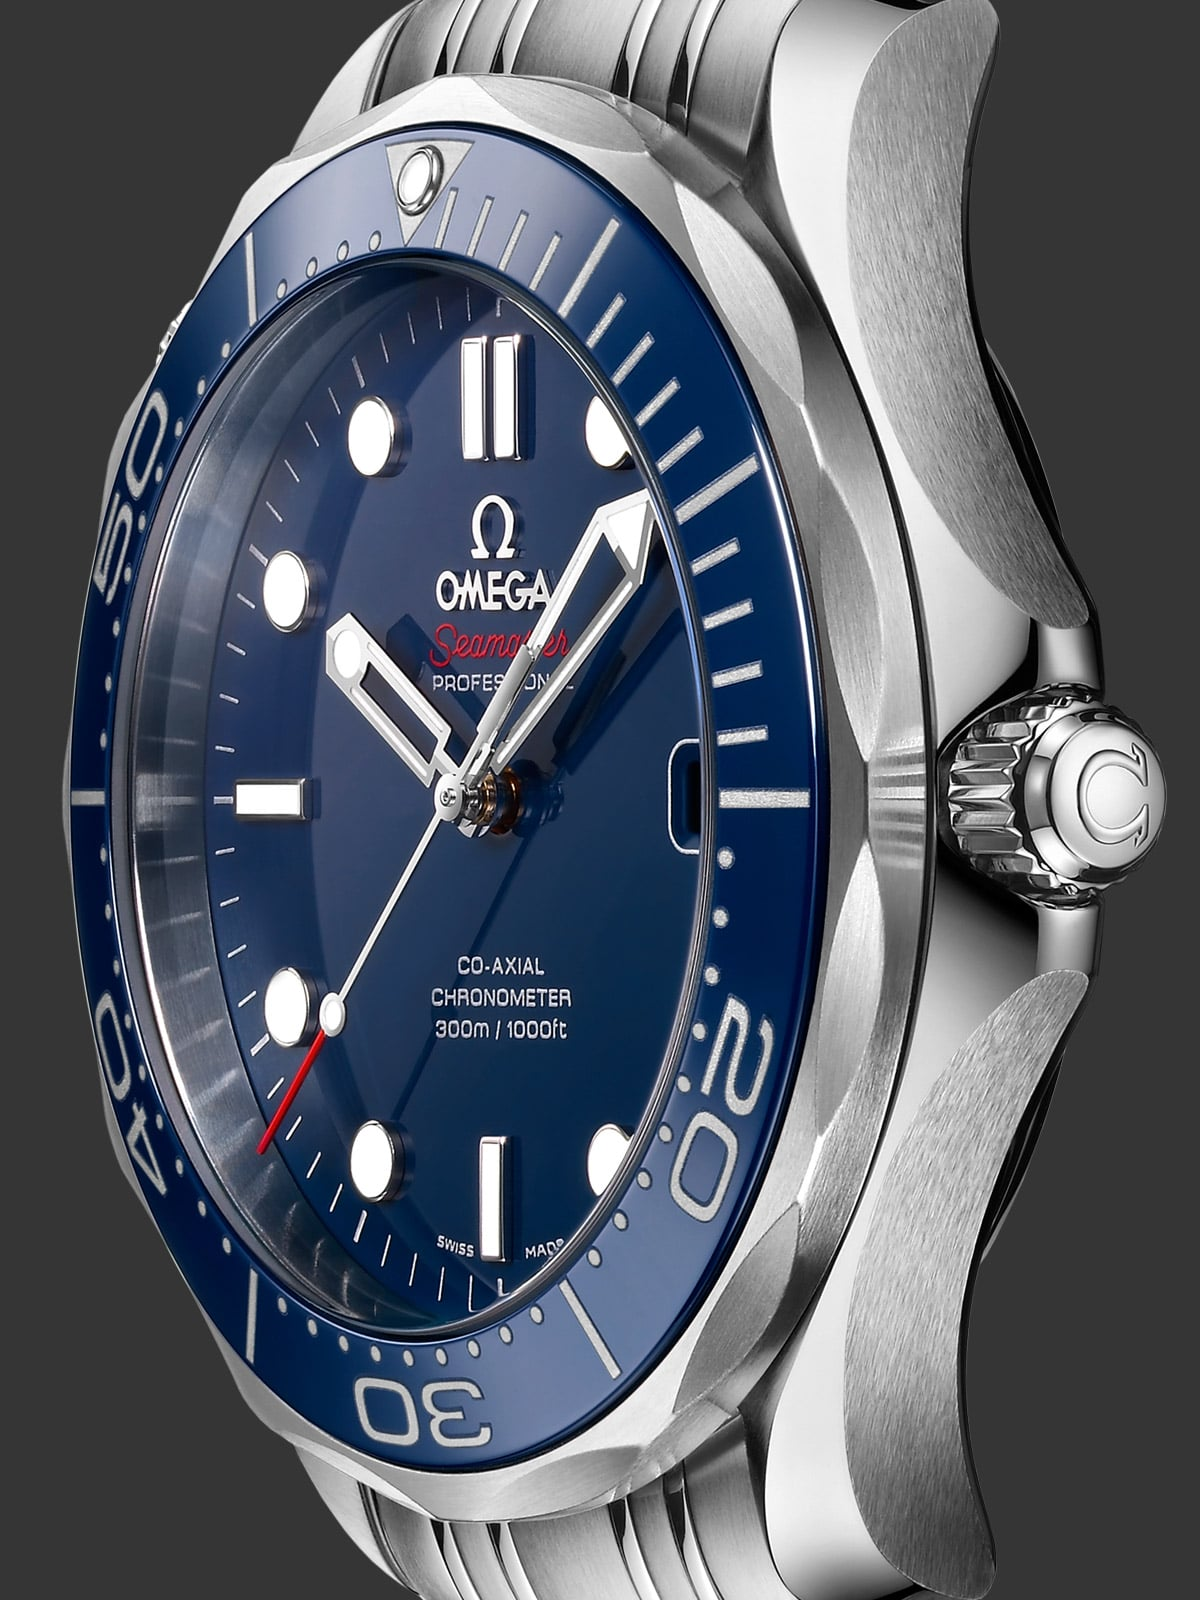 Seamaster Diver 300 M Gents' Collection Item 1 - 2401